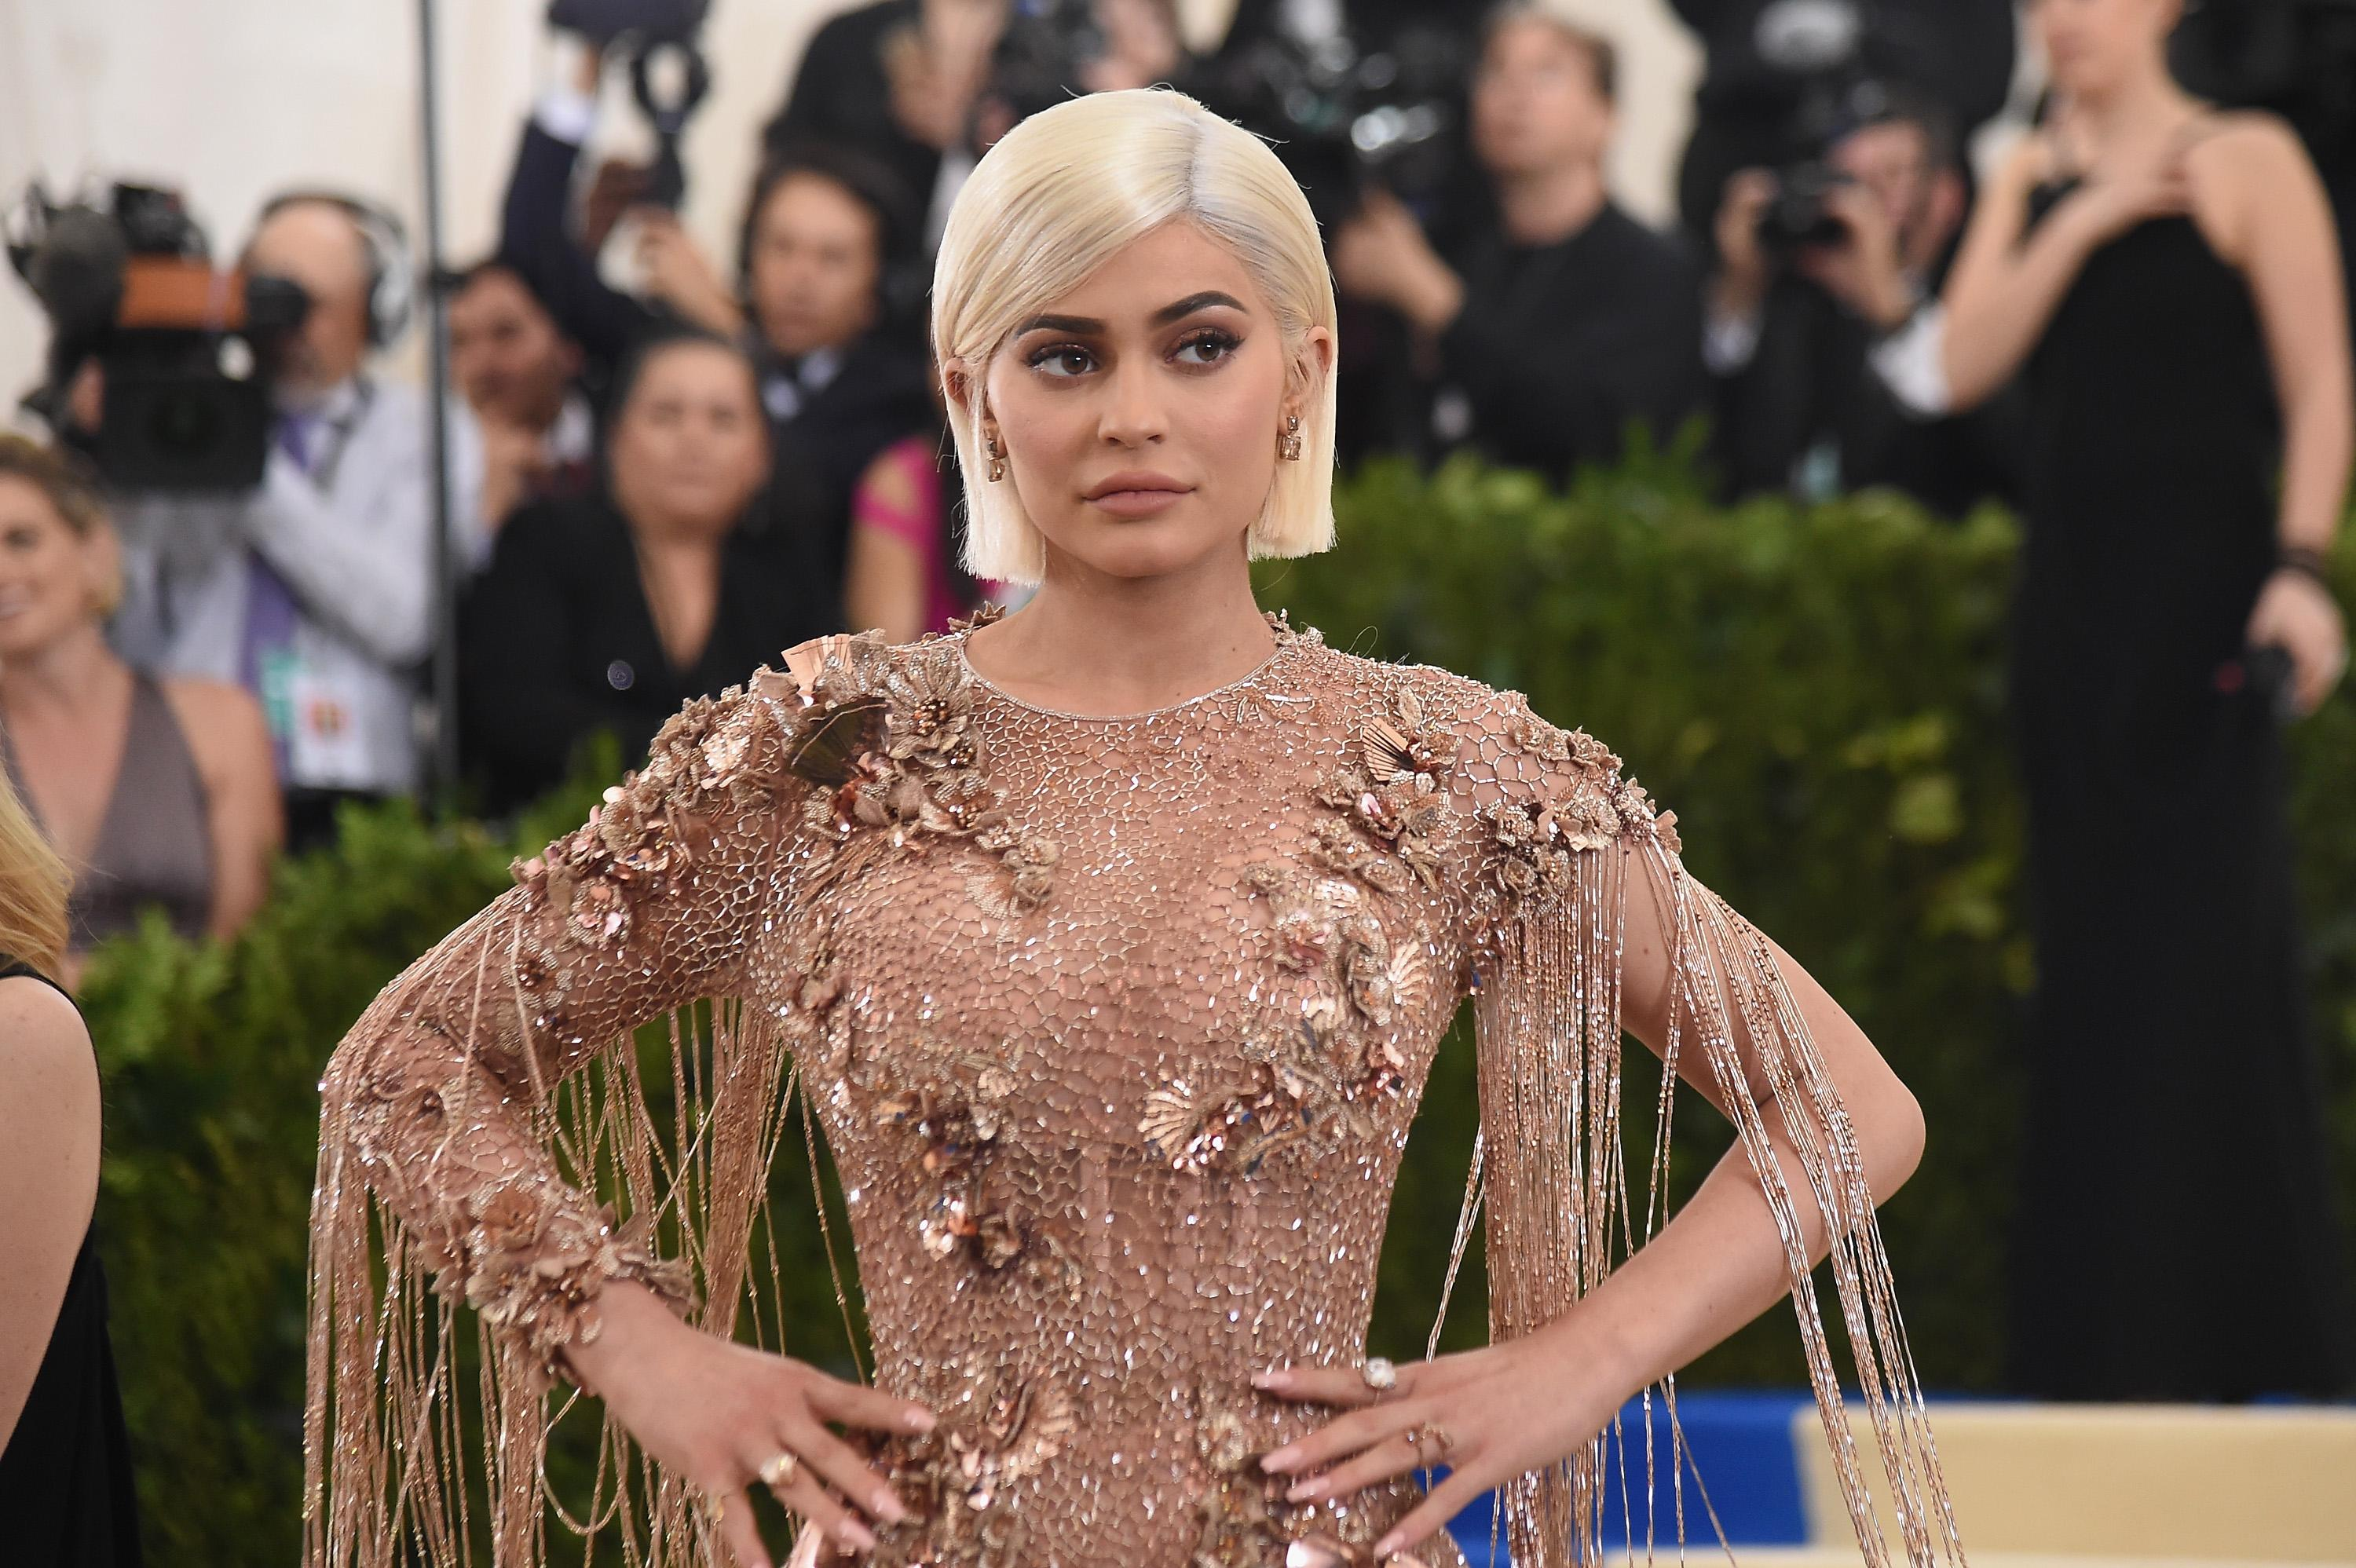 Pregnant Kylie Jenner planning to build a compound for 'extreme privacy'